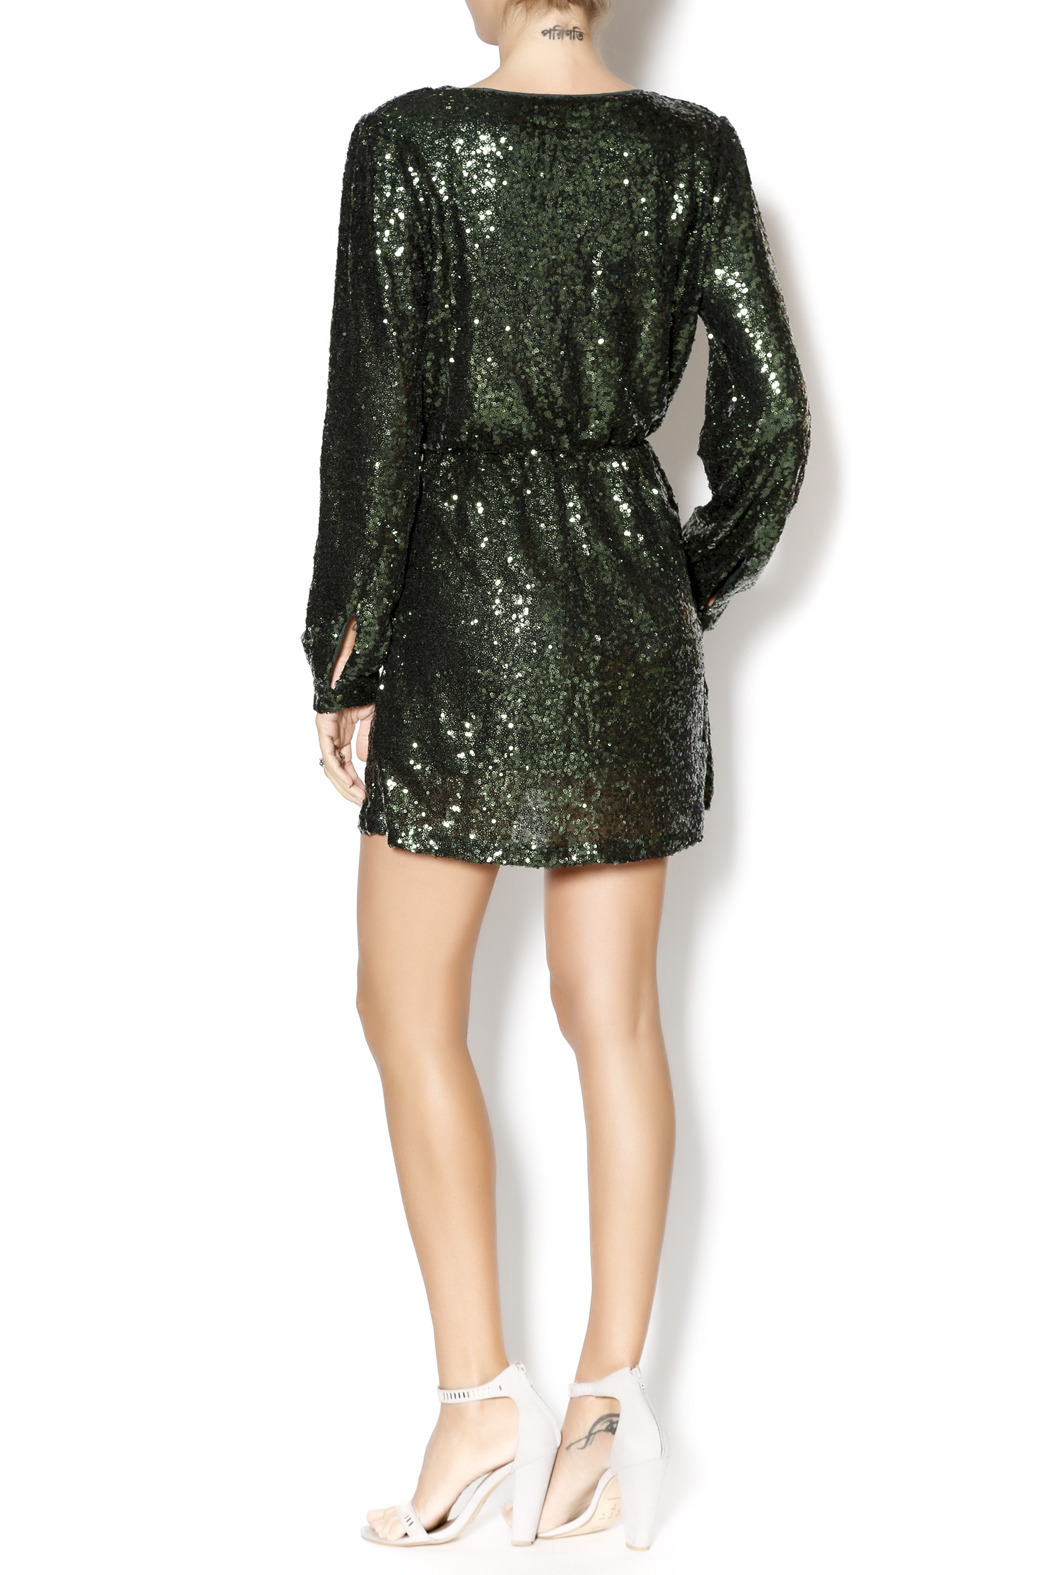 58bbd097bca2 Honey Punch Emerald Sequin Wrap Dress from Mississippi by LipChic ...